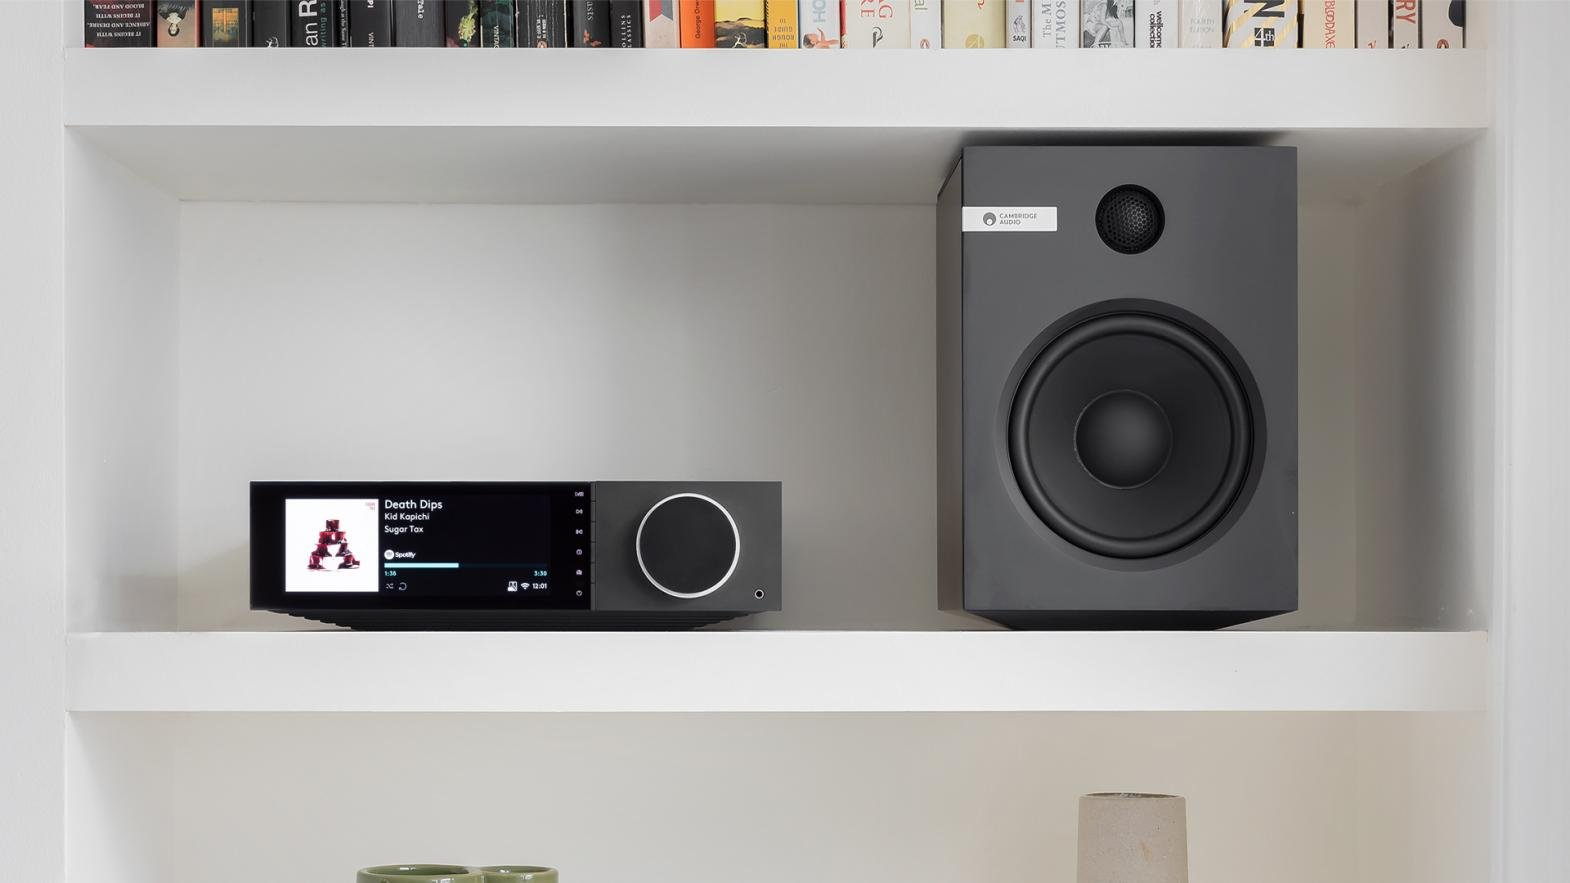 Cambridge Audio - evo set-up